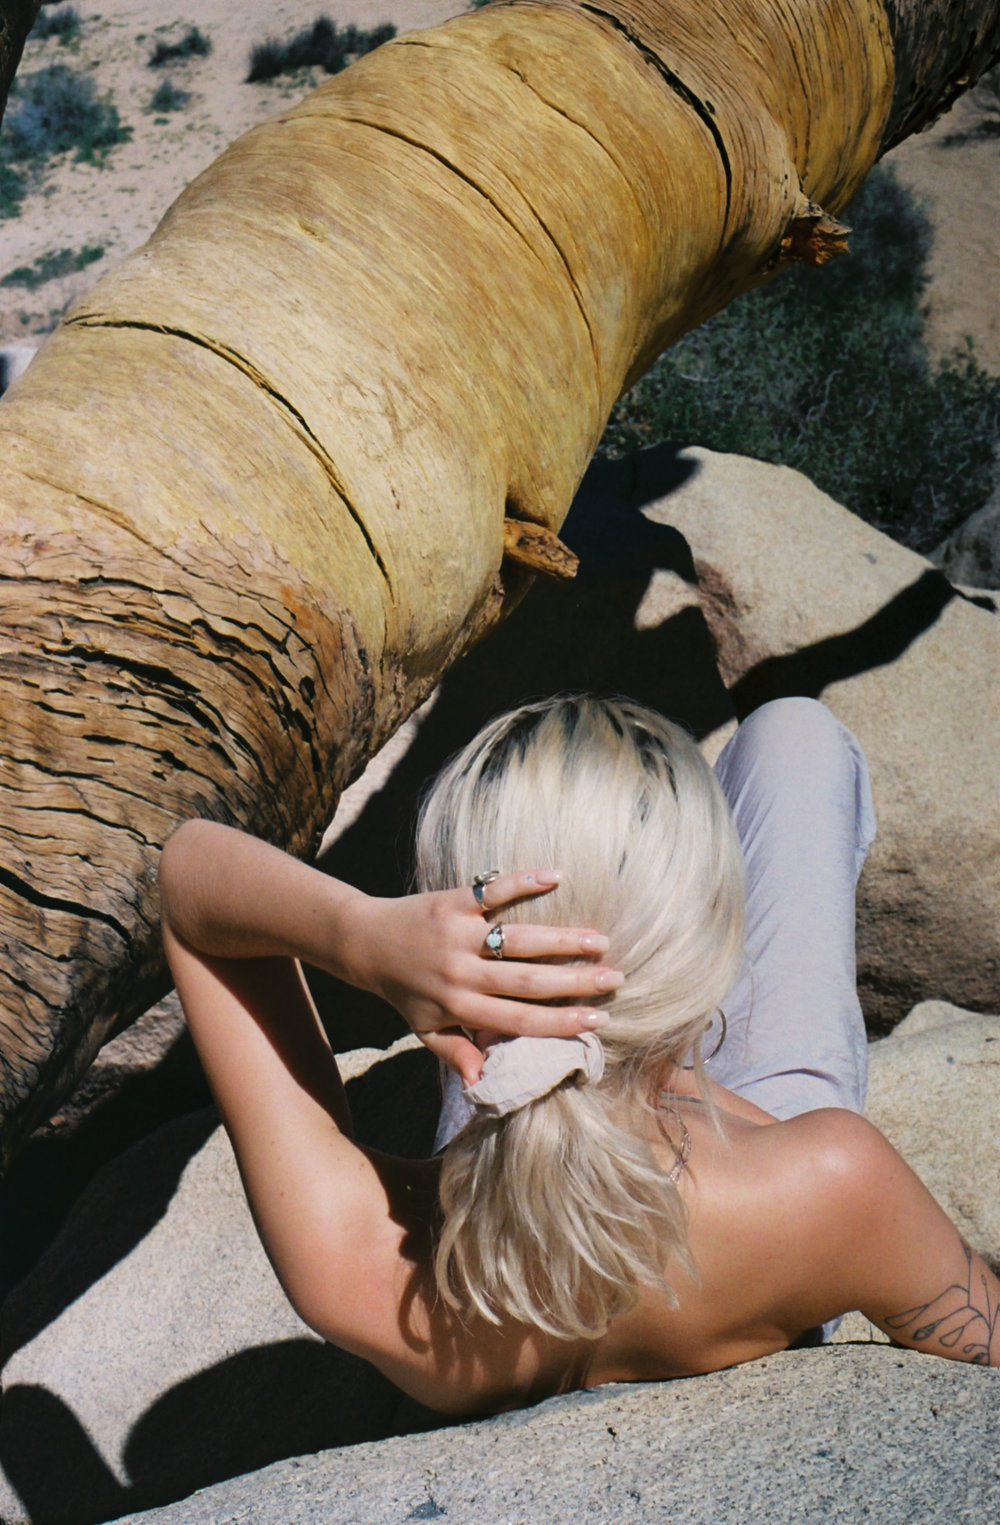 client -  LACAUSA  :  48 Hours In Joshua Tree  digital editorial content, 35mm